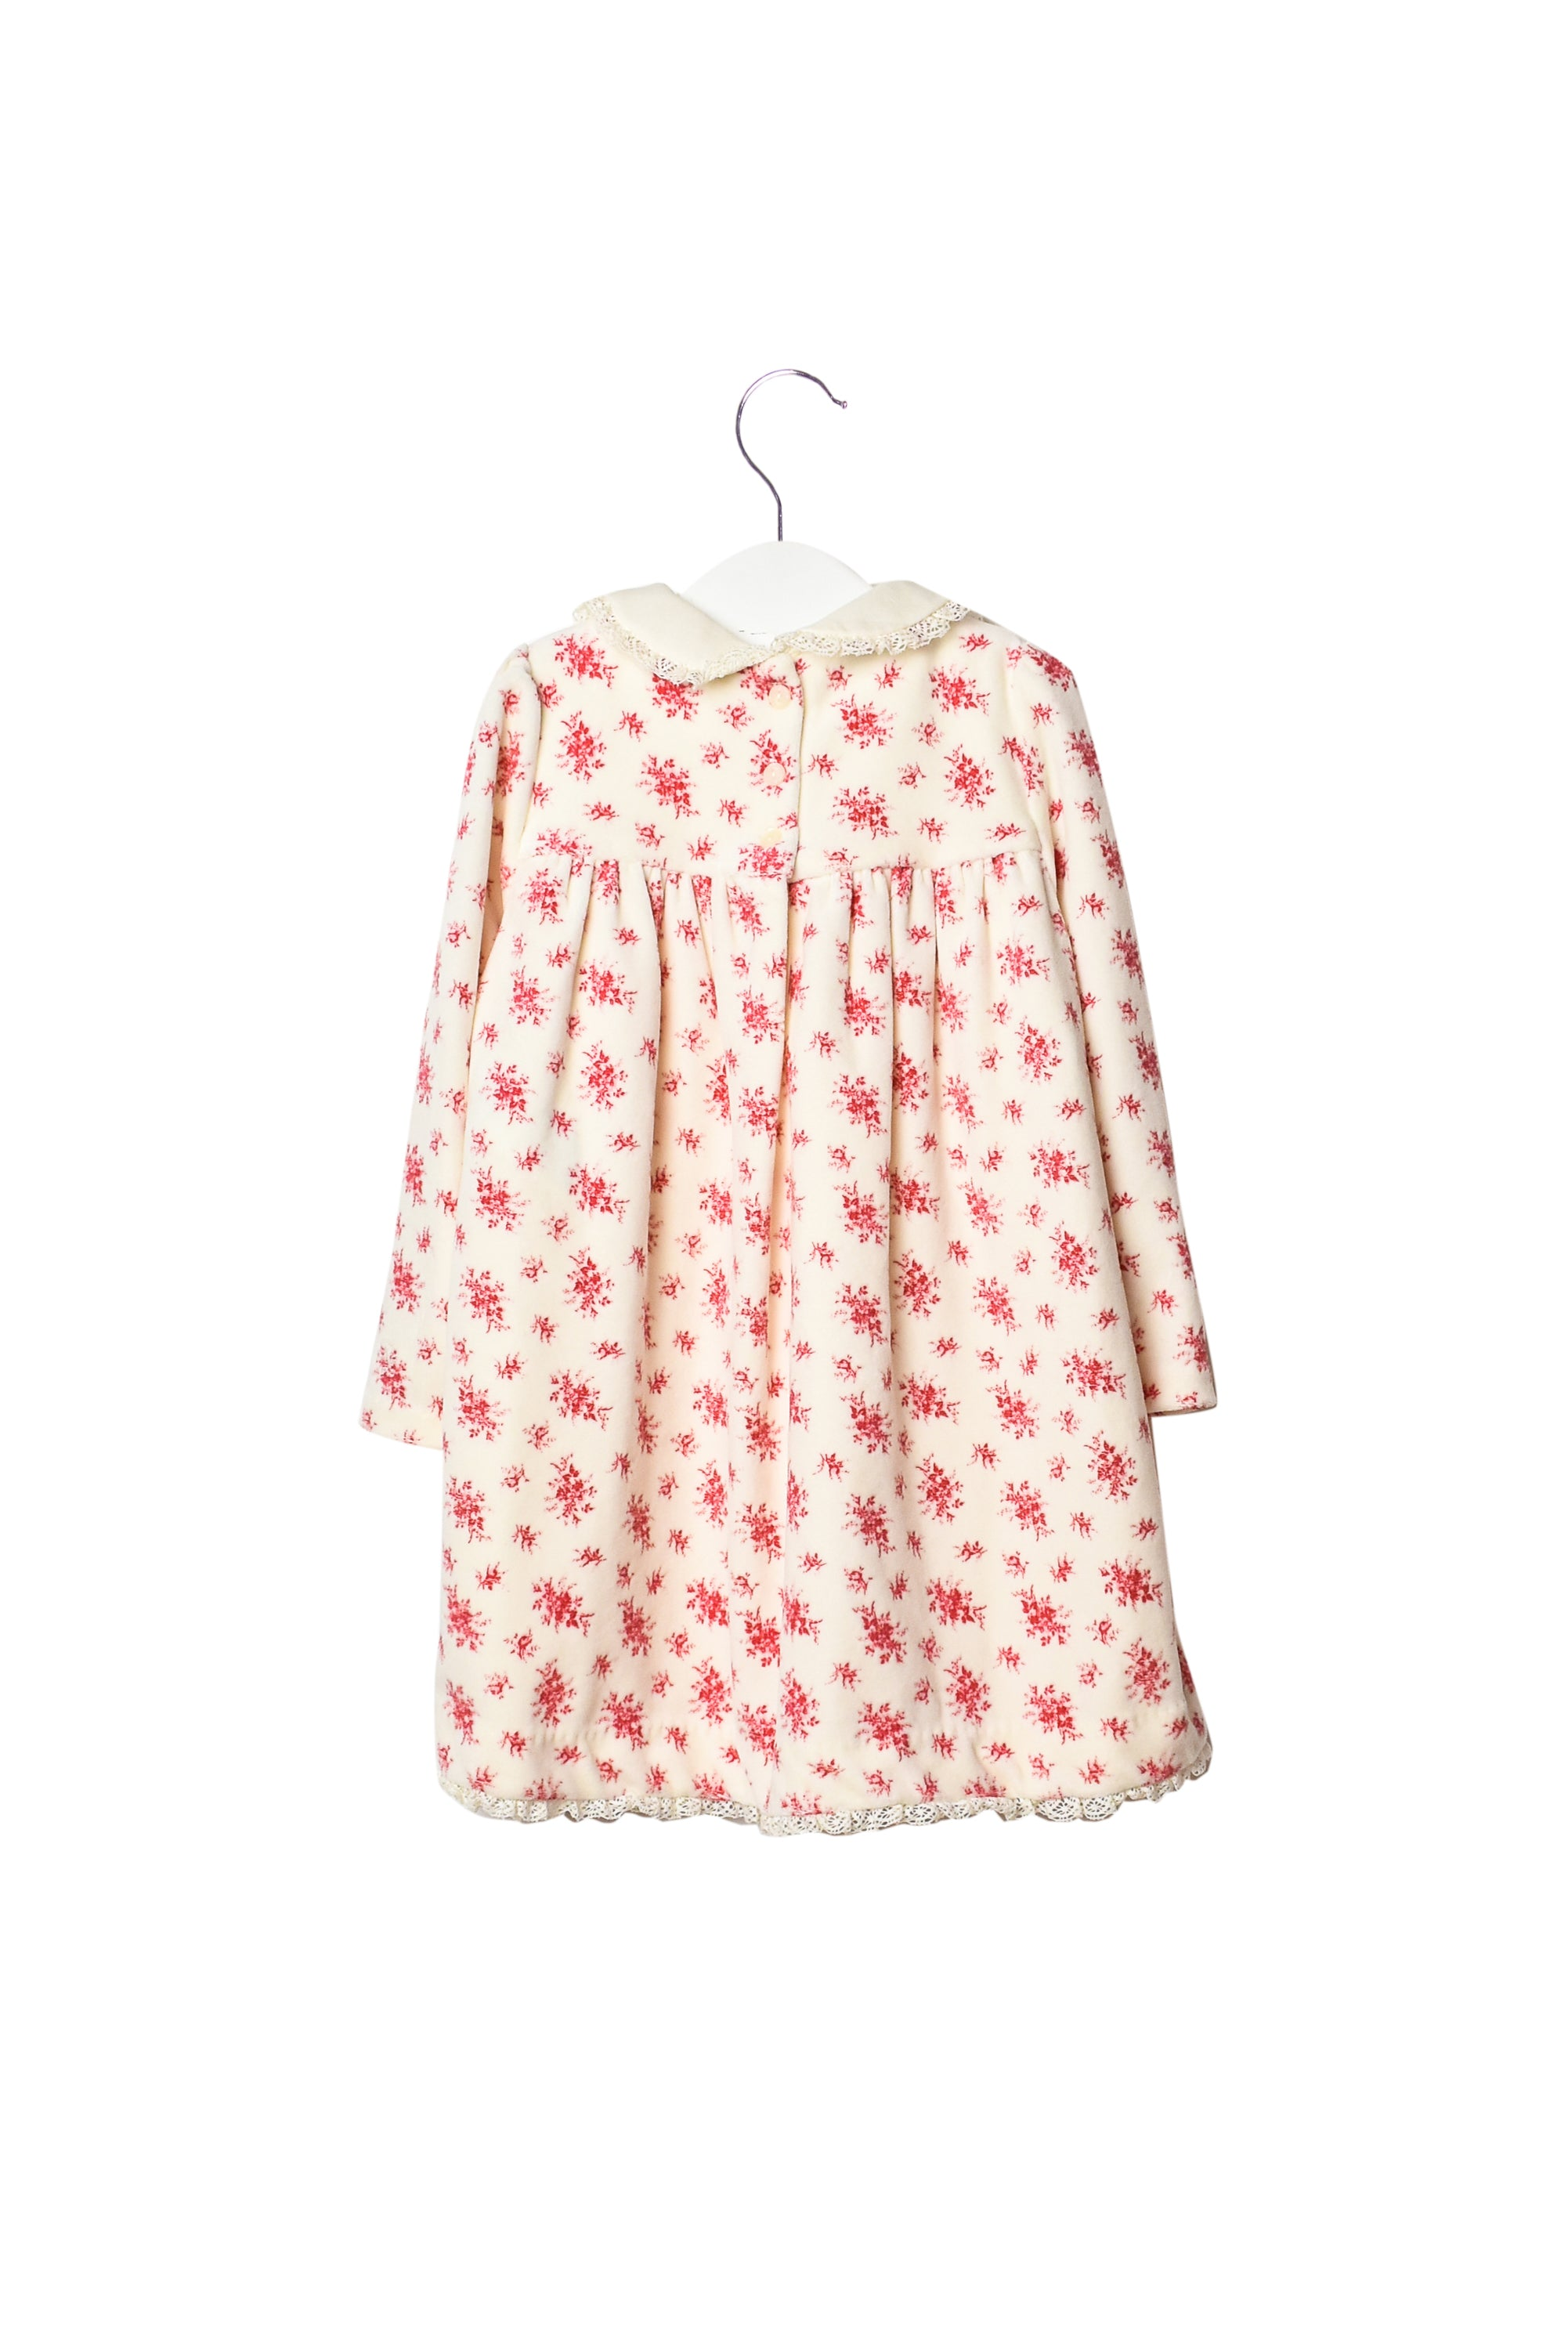 10008068 Ralph Lauren Baby~ Dress and Bloomer 12M at Retykle